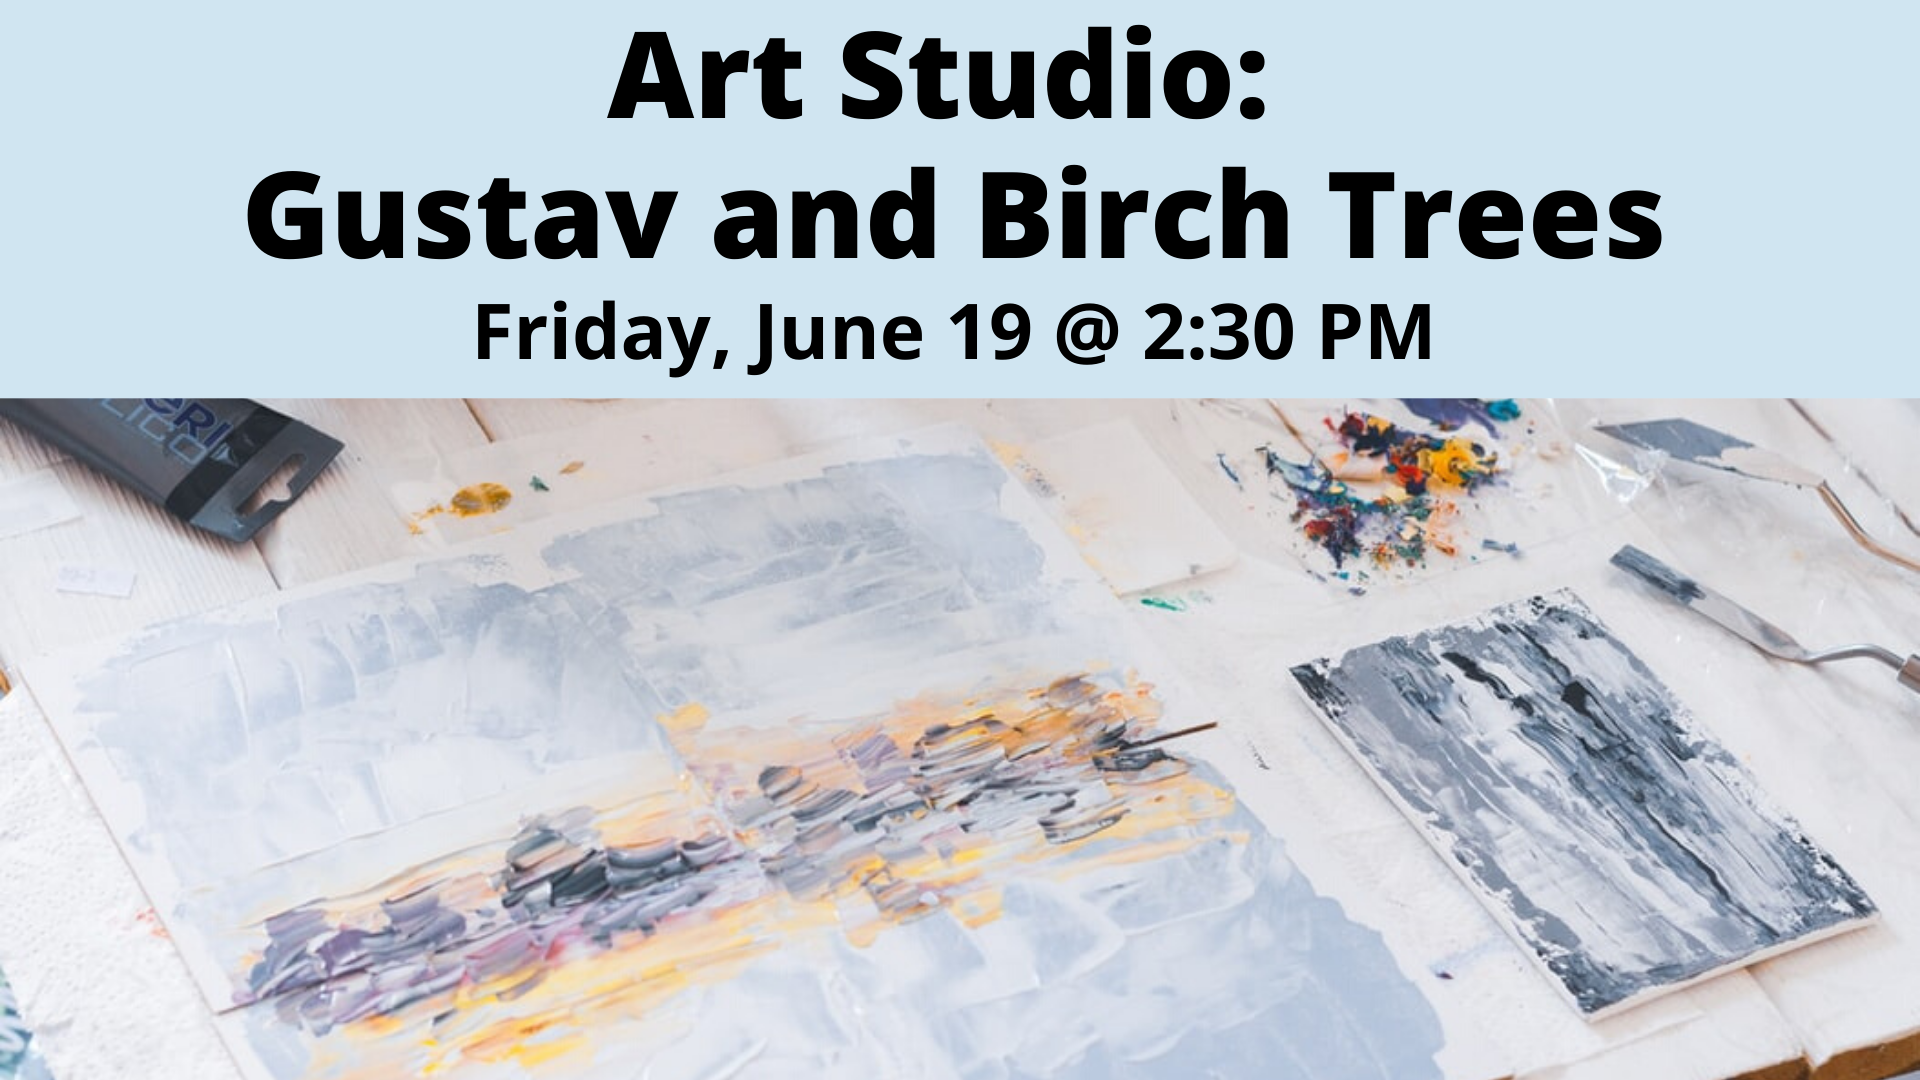 Art Studio: Gustav and Birch Trees